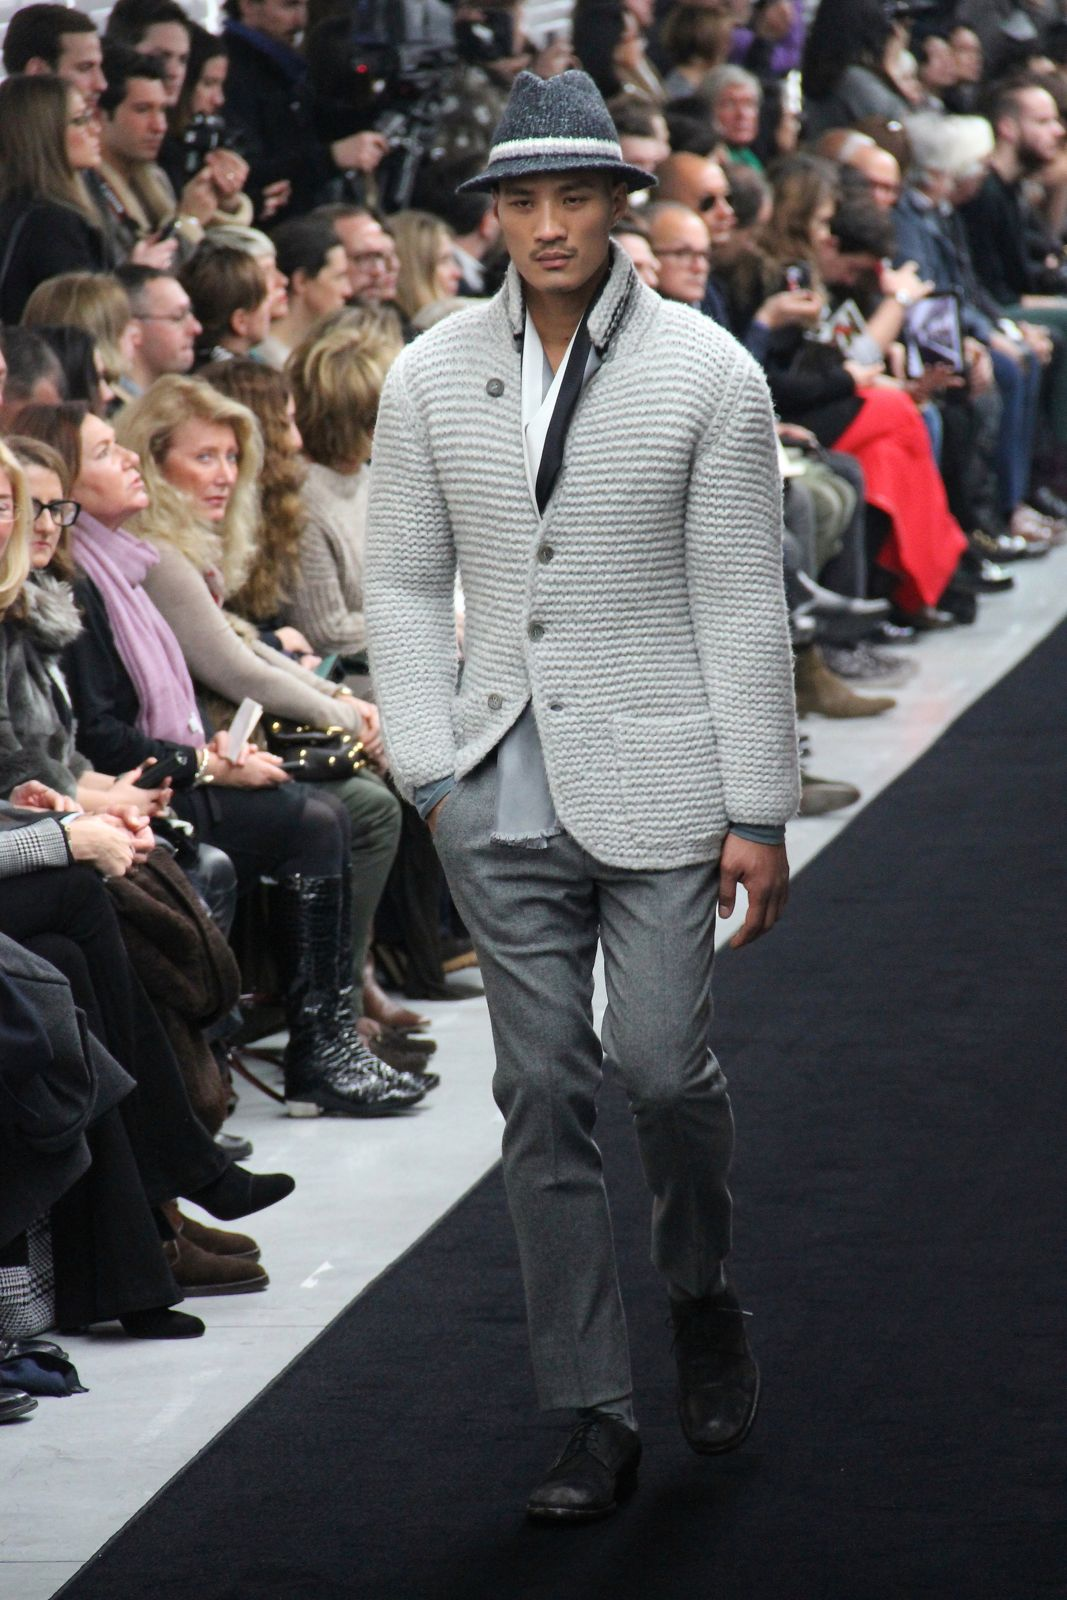 Ermanno Scervino Fall Winter 2012-13 Men's Collection Milano Fashion Week